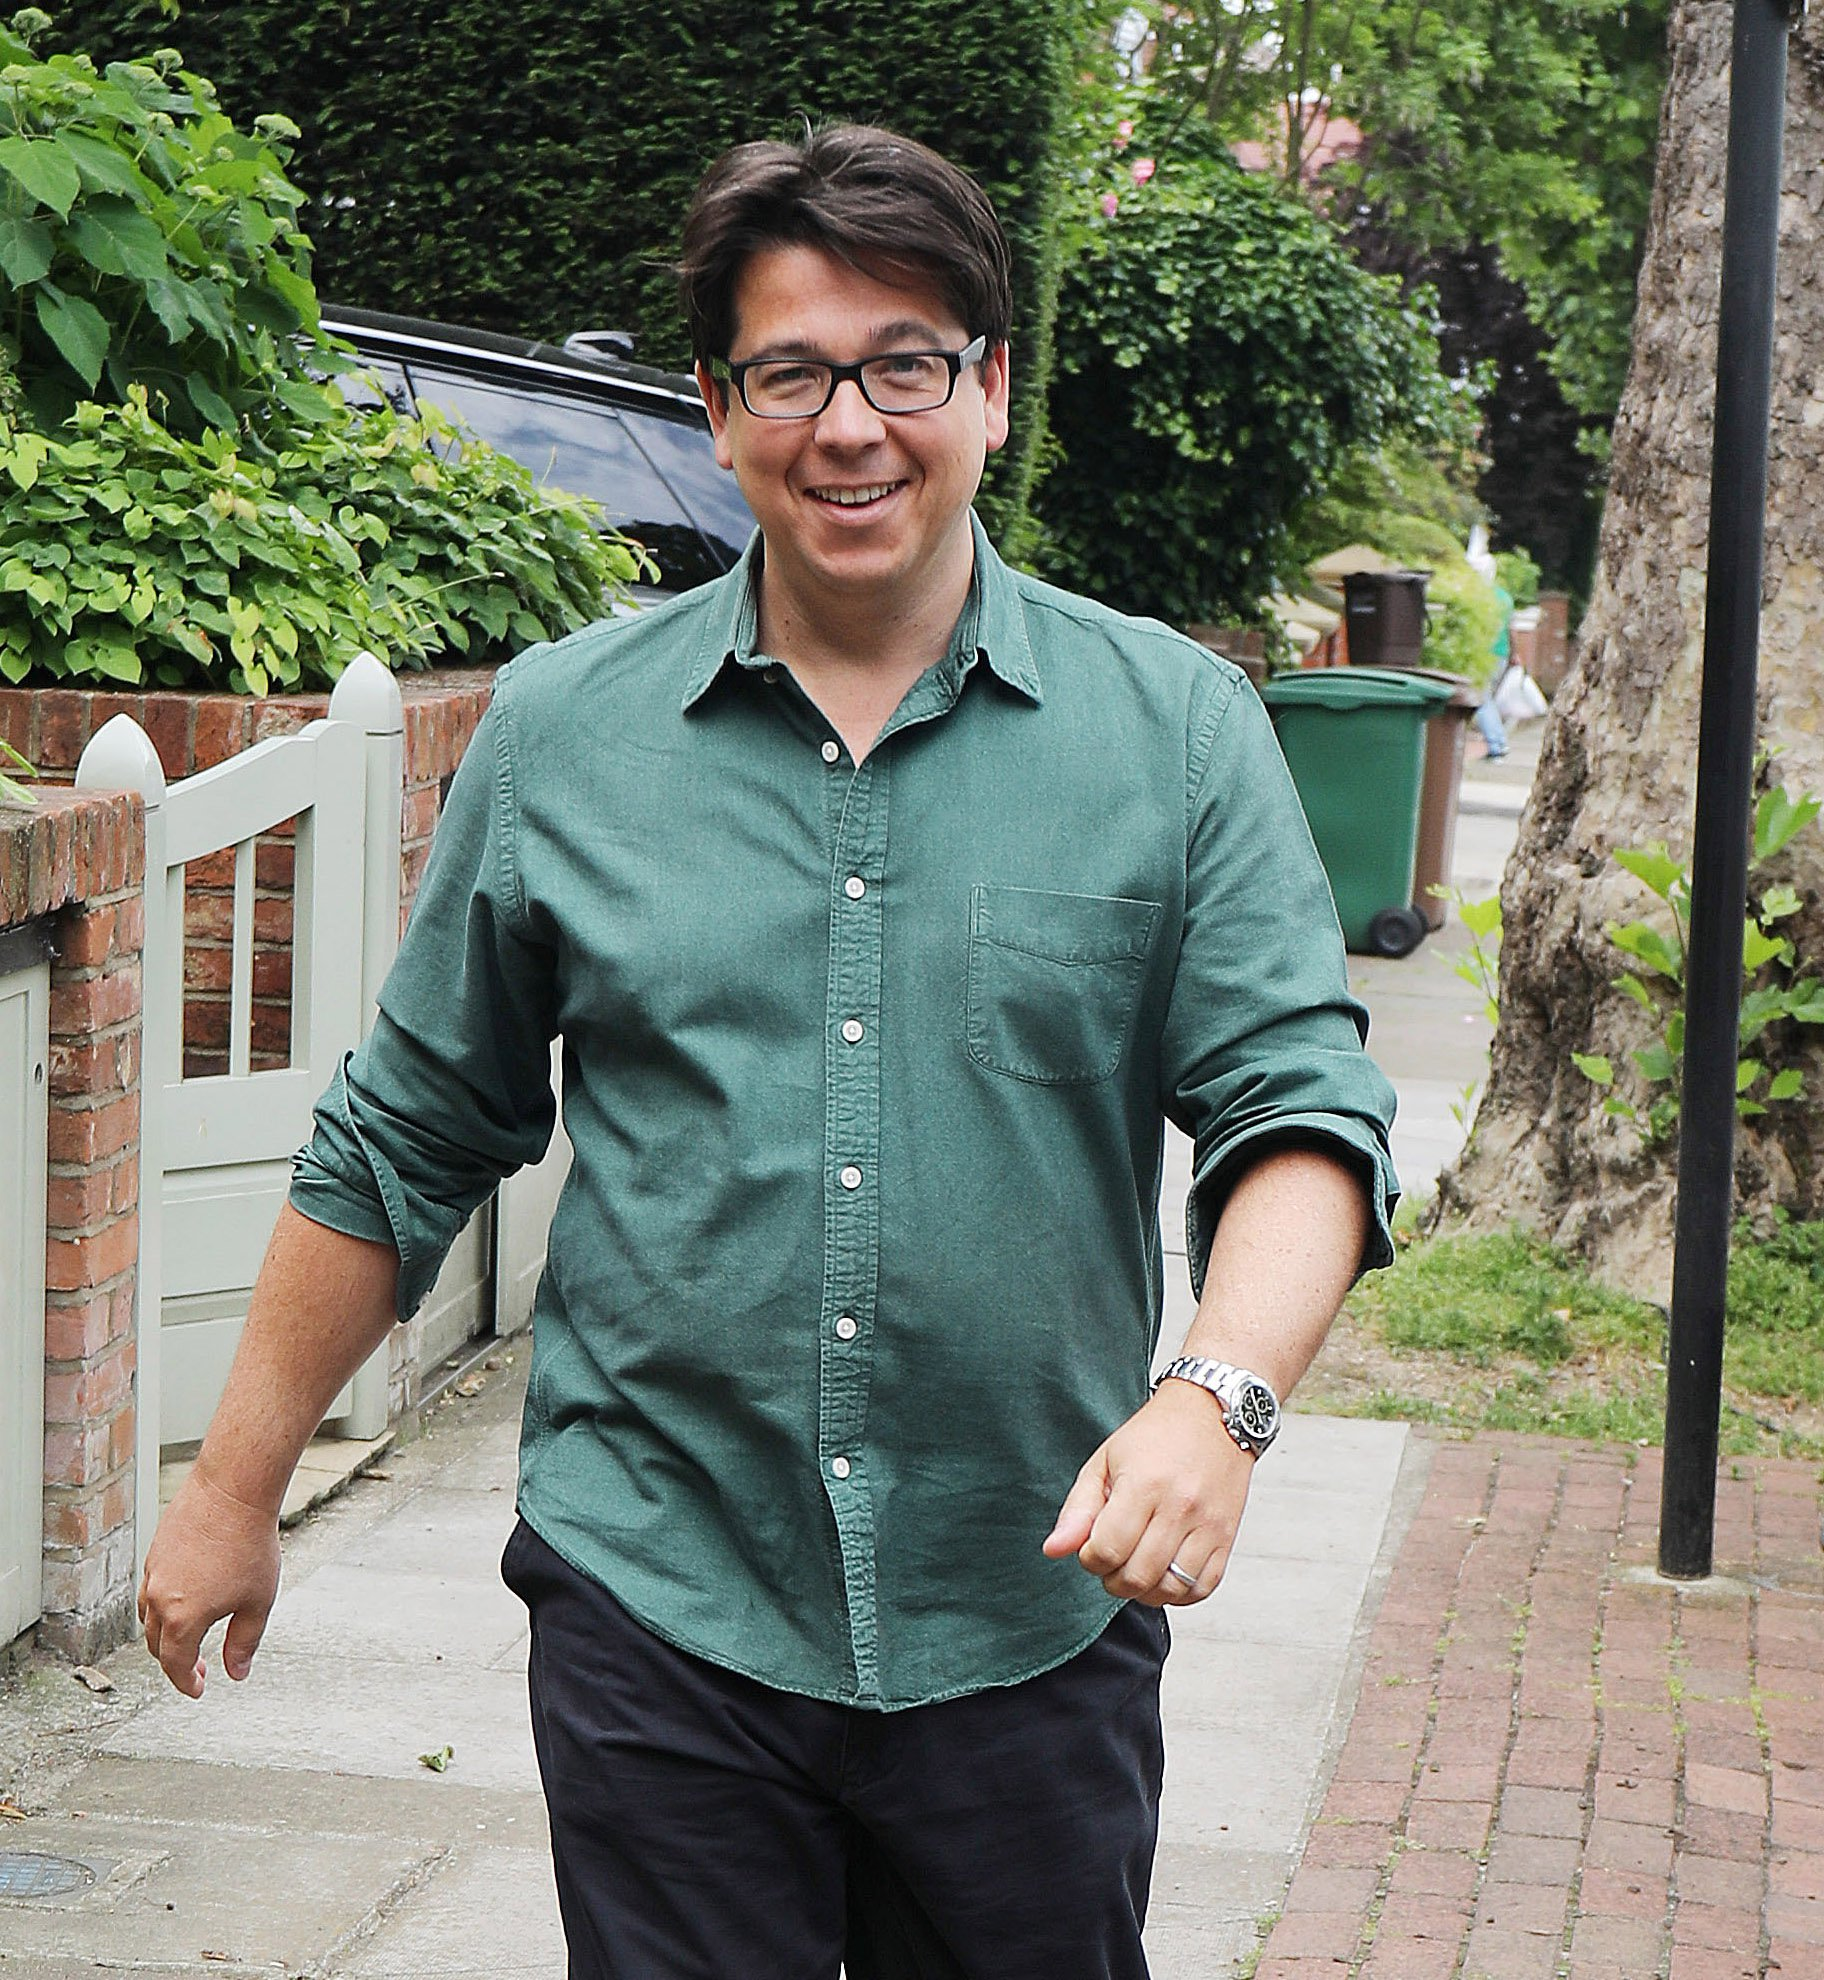 """Pic shows: Michael McIntyre was all smiles as he left home in leafy North London today heading off for his World Tour gig in Dublin. McIntyre was sporting a new watch and smiled broadly as he jauntily strolled to his car. He was using the same car that was brutally attacked earlier in the week, but now he had a driver and a minder in the car with him, possibly for added security. Before stepping into his 120k Range Rover, now repaired, he said to photographers waiting. """"Morning, lads. Drama is all over and now it's back to work. Have a great day."""" pic by Gavin Rodgers/Pixel8000"""